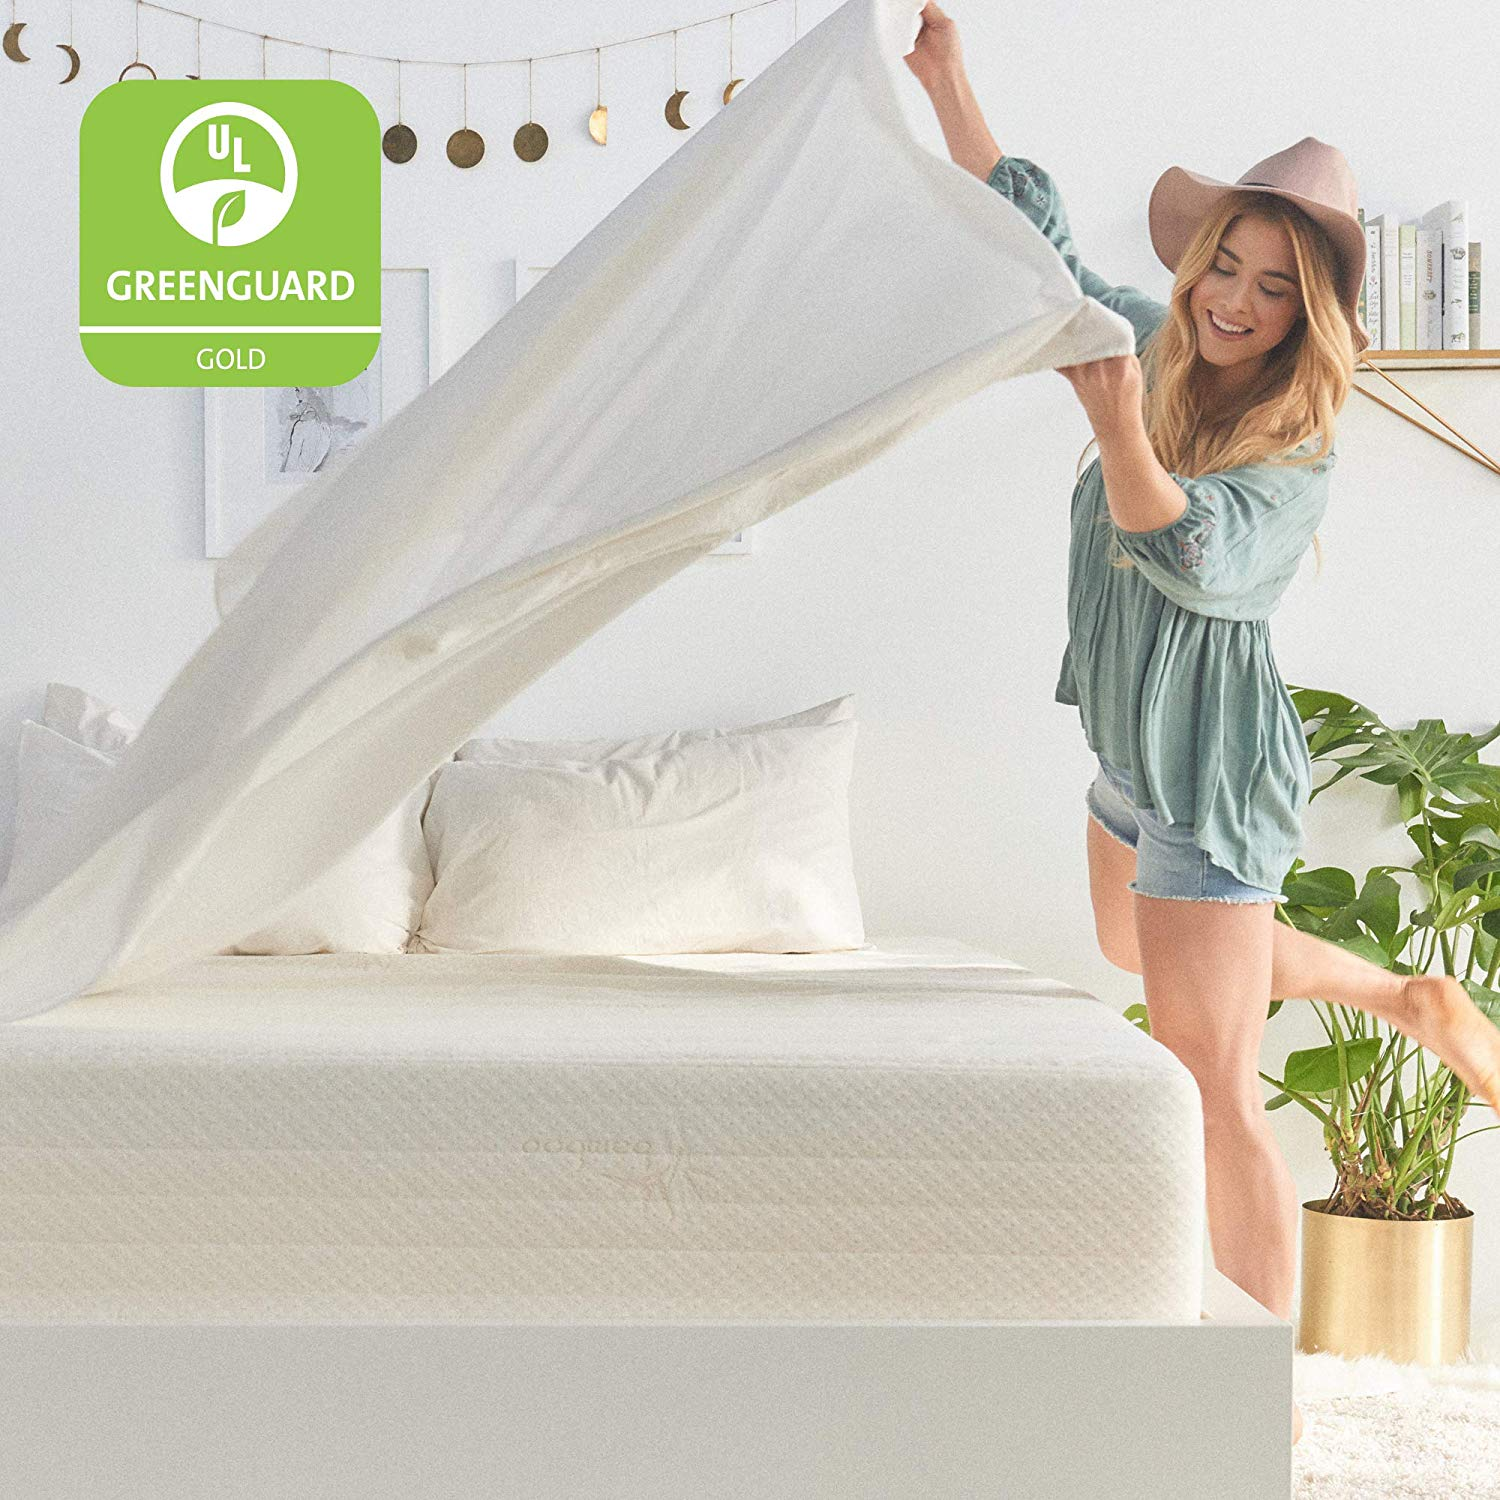 Brentwood Home Cypress Bamboo Mattress Review by www.snoremagazine.com